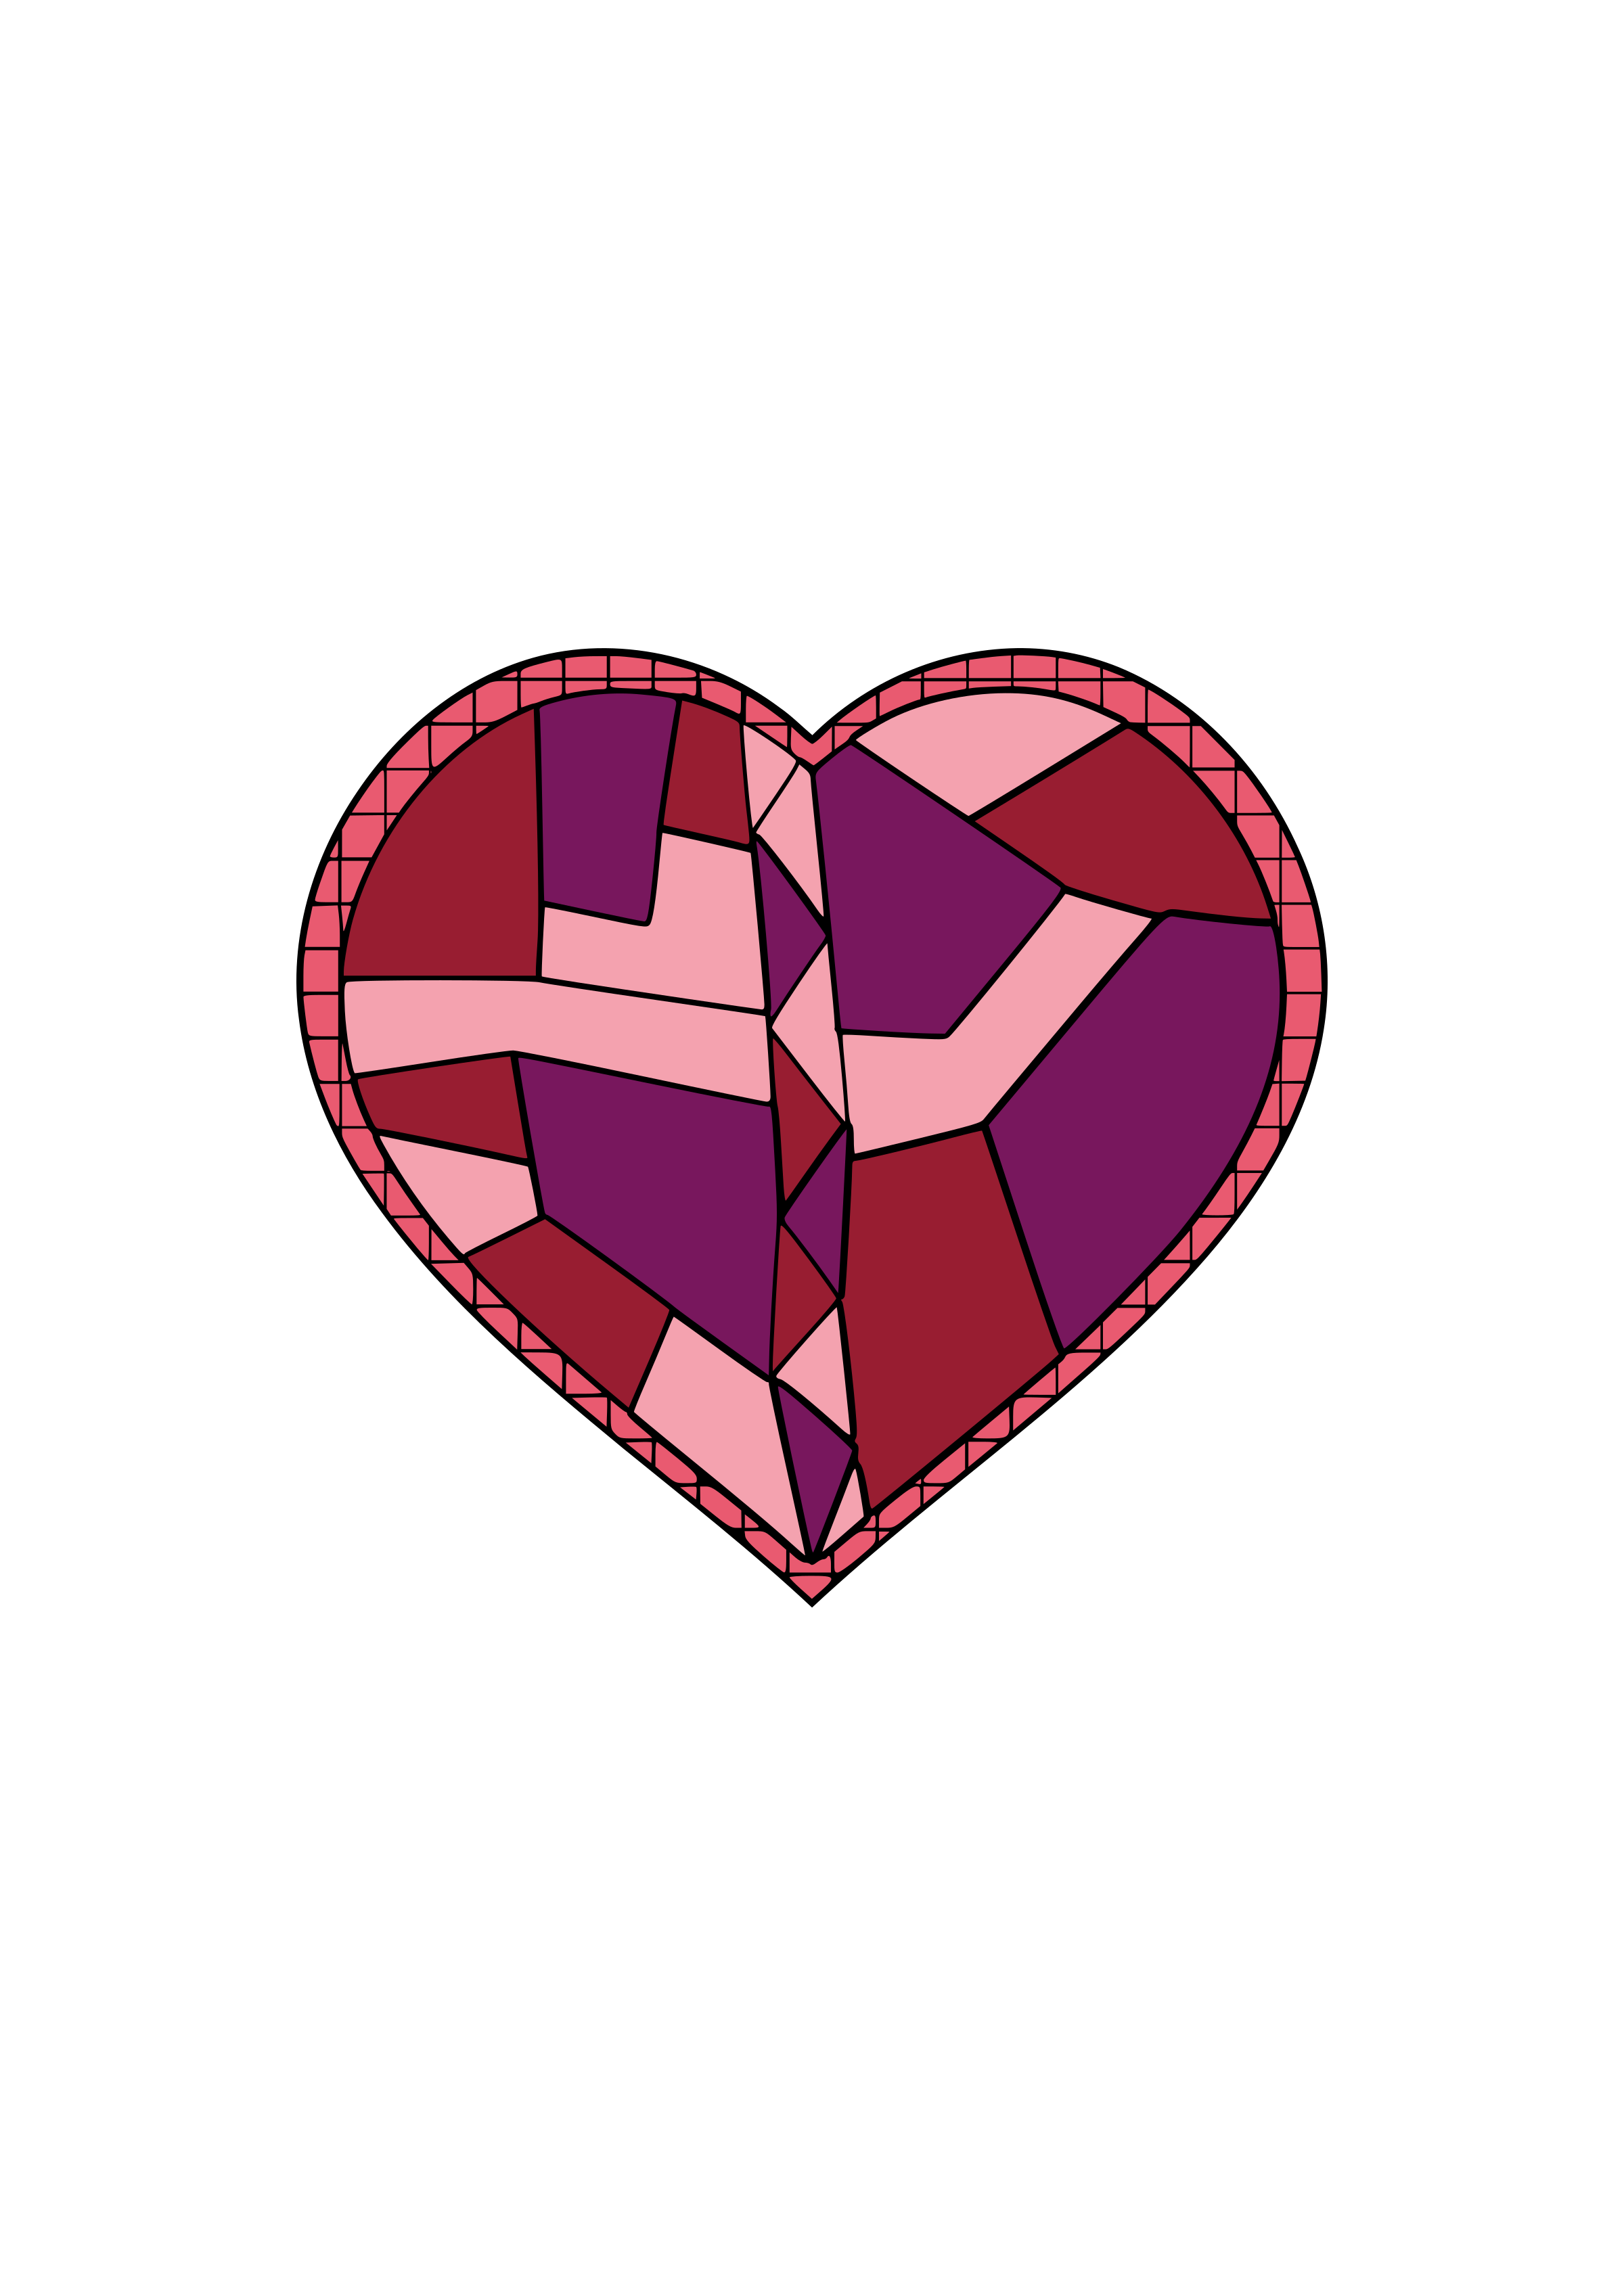 Stained Glass Heart by Animystik